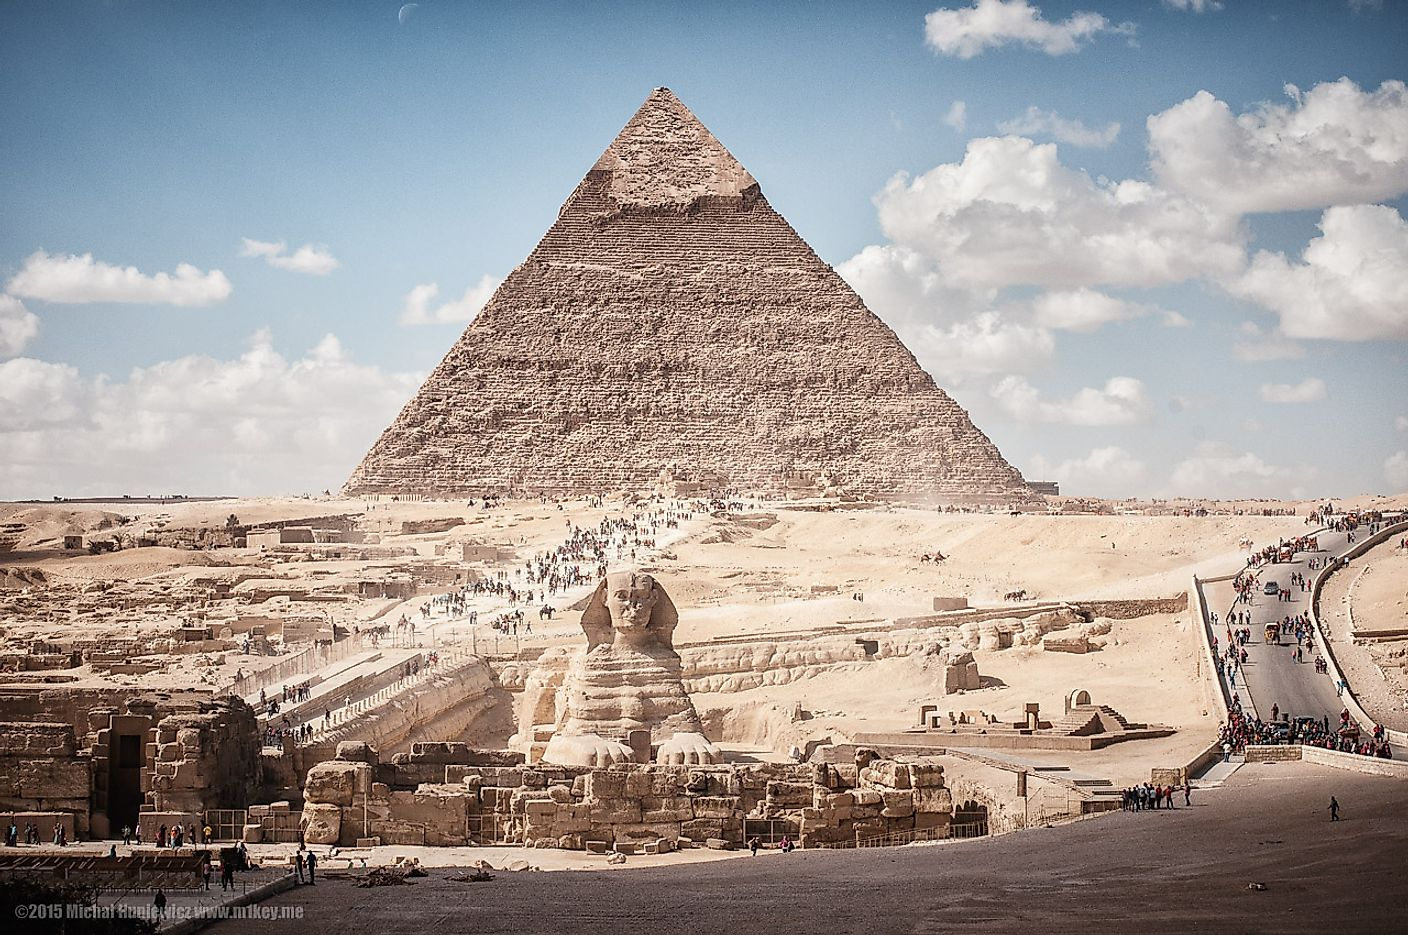 The Most Notable Pyramids Of Egypt WorldAtlascom - Map of egypt pyramids and sphinx